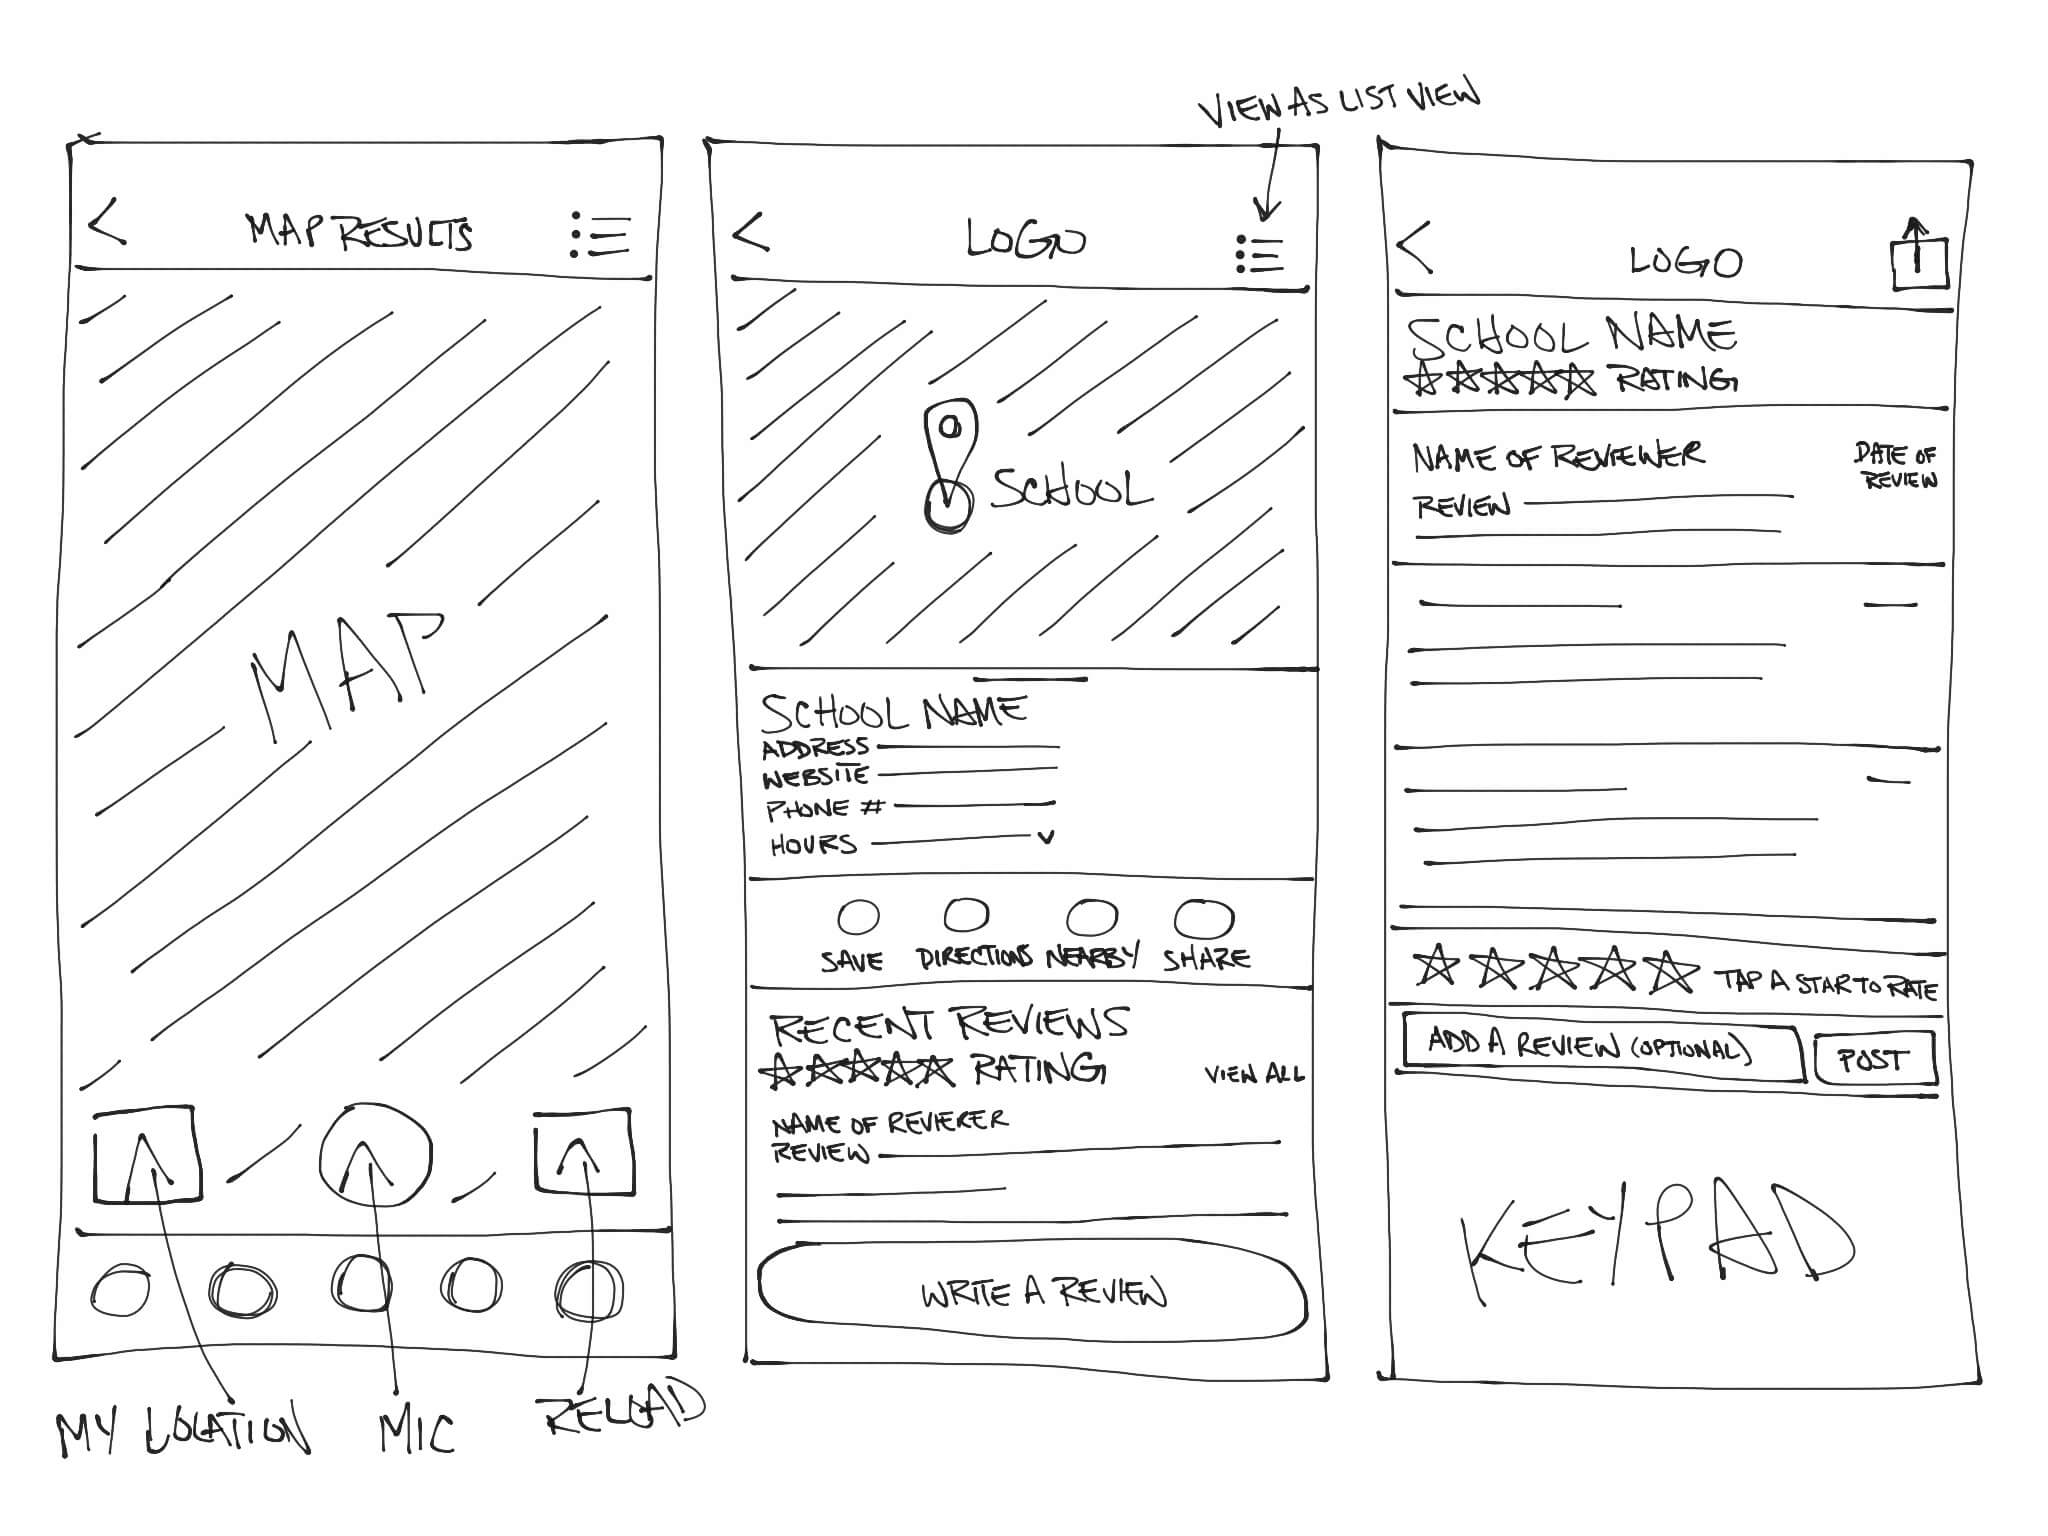 Screenshots: UI Sketches